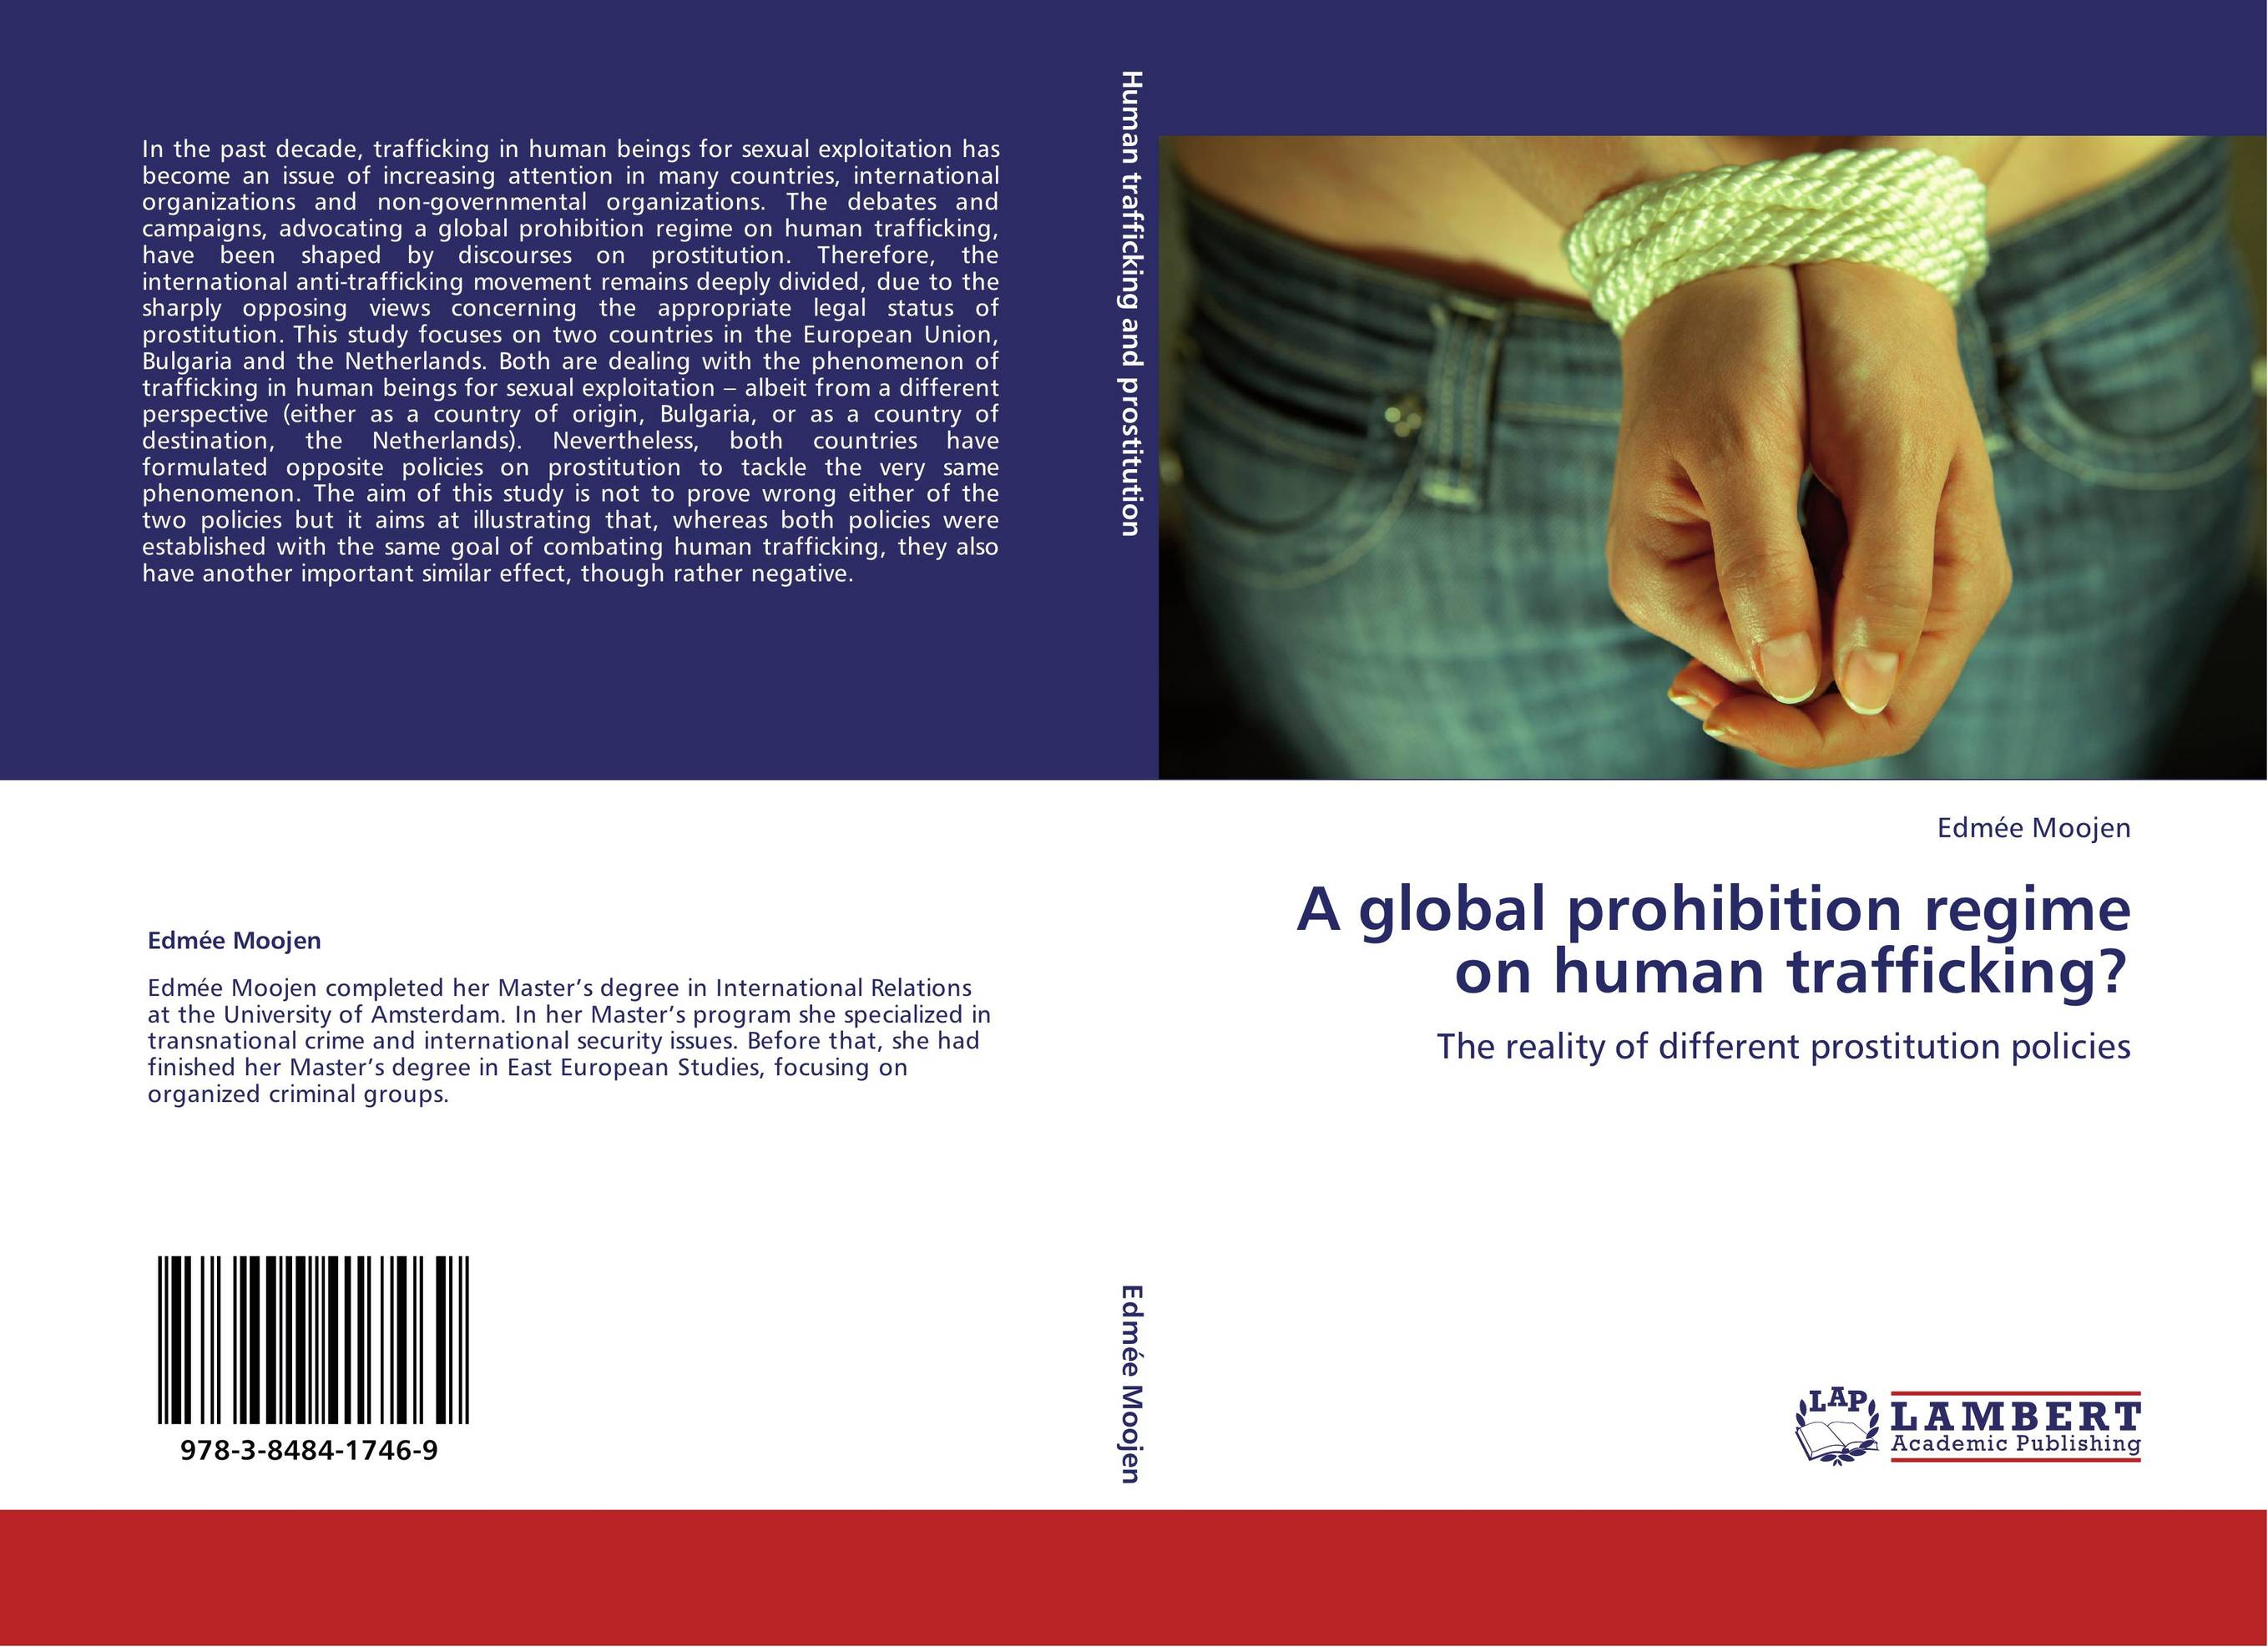 a description of prostitution on different articles Prostitution and human trafficking: a paradigm shift articles prostitution and human trafficking: a most of the women expressed that prostitution was not.